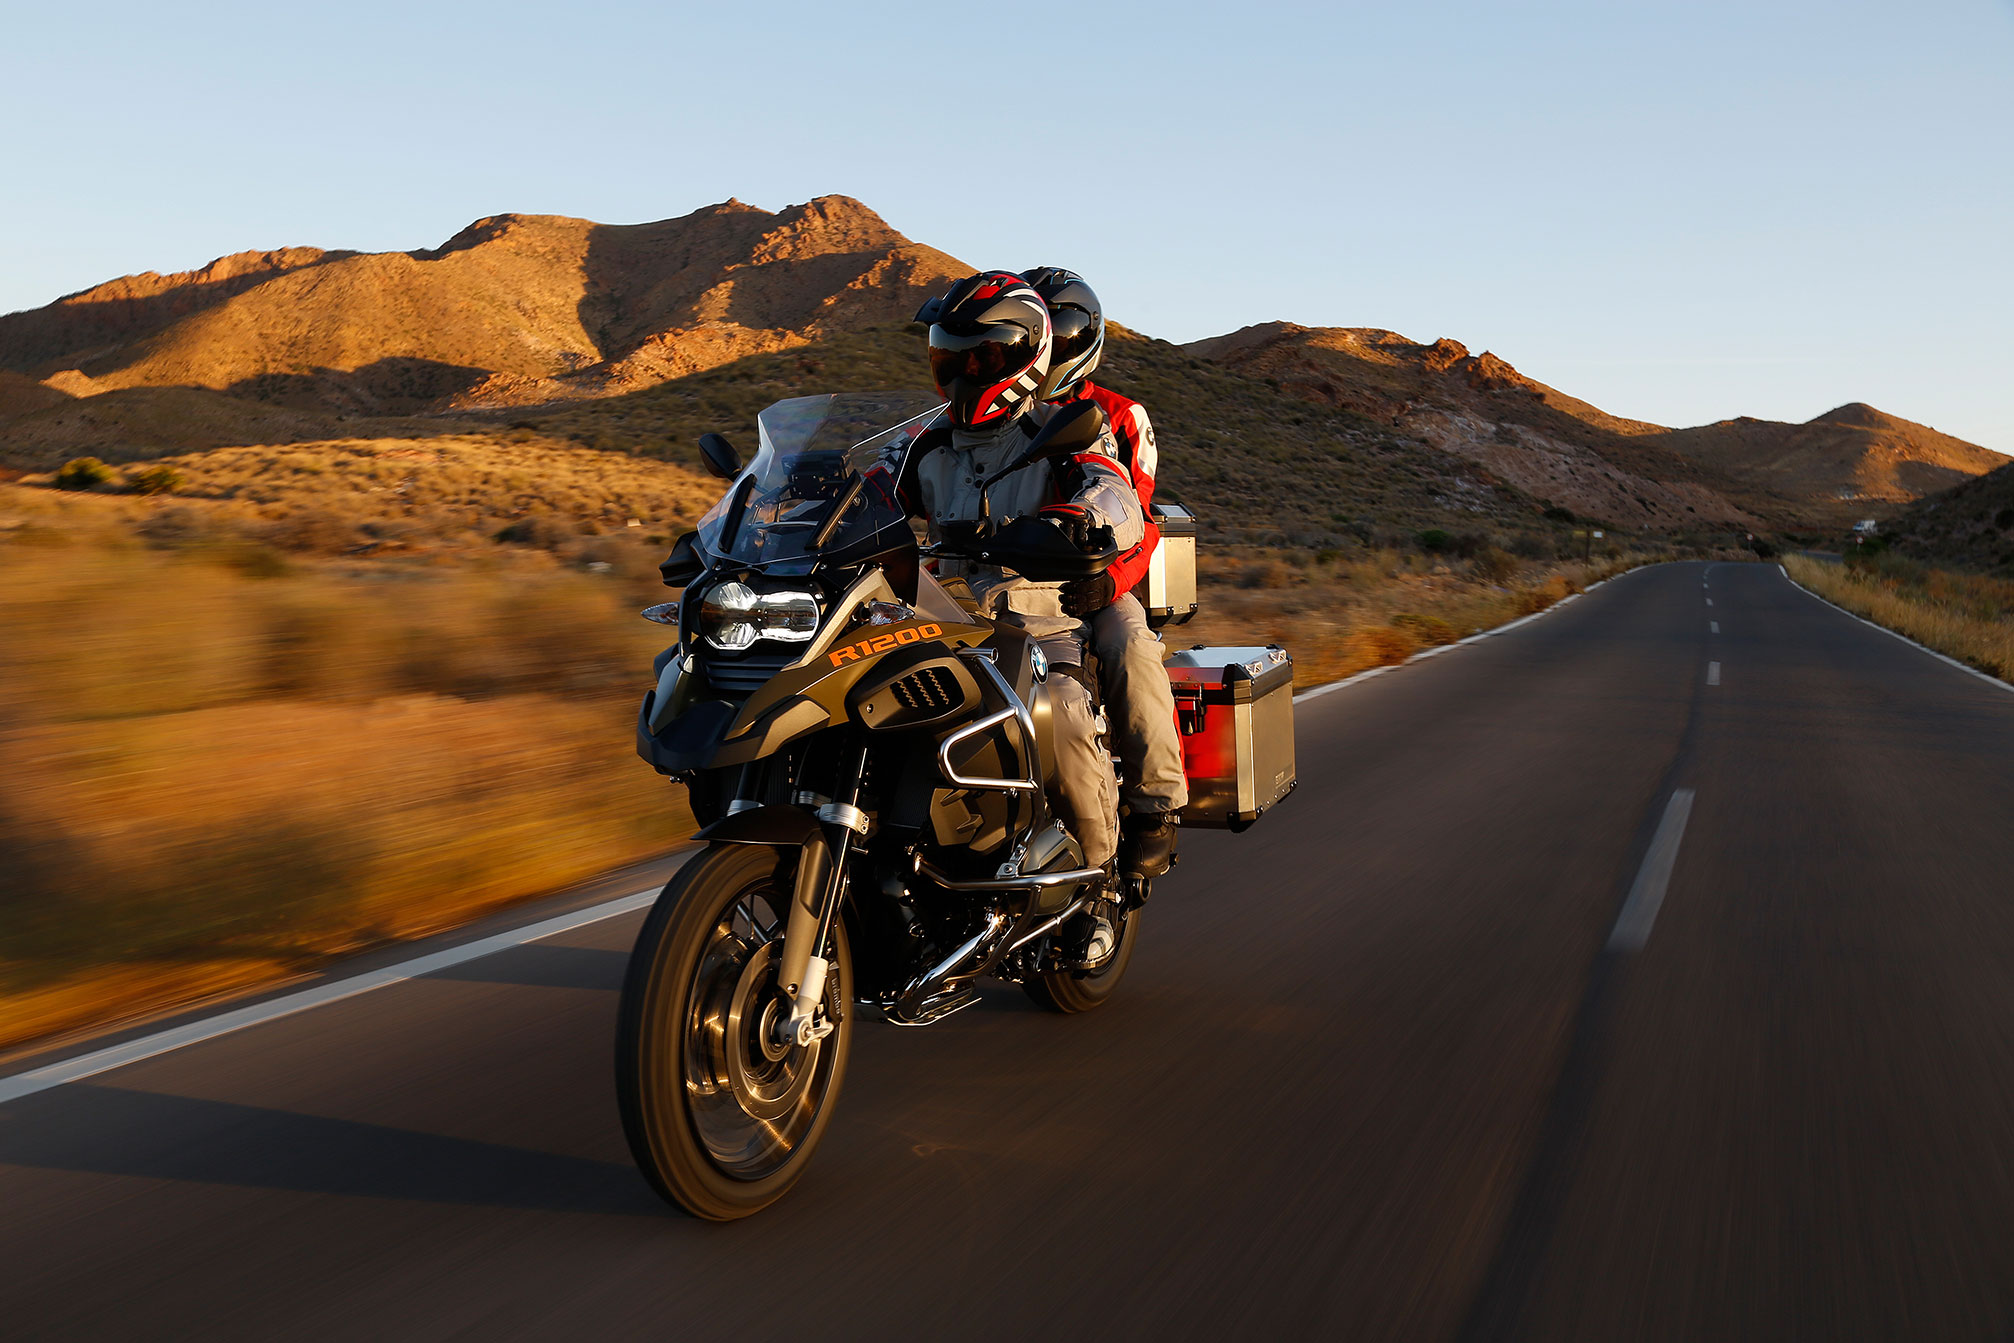 BMW R1200GS images #9187